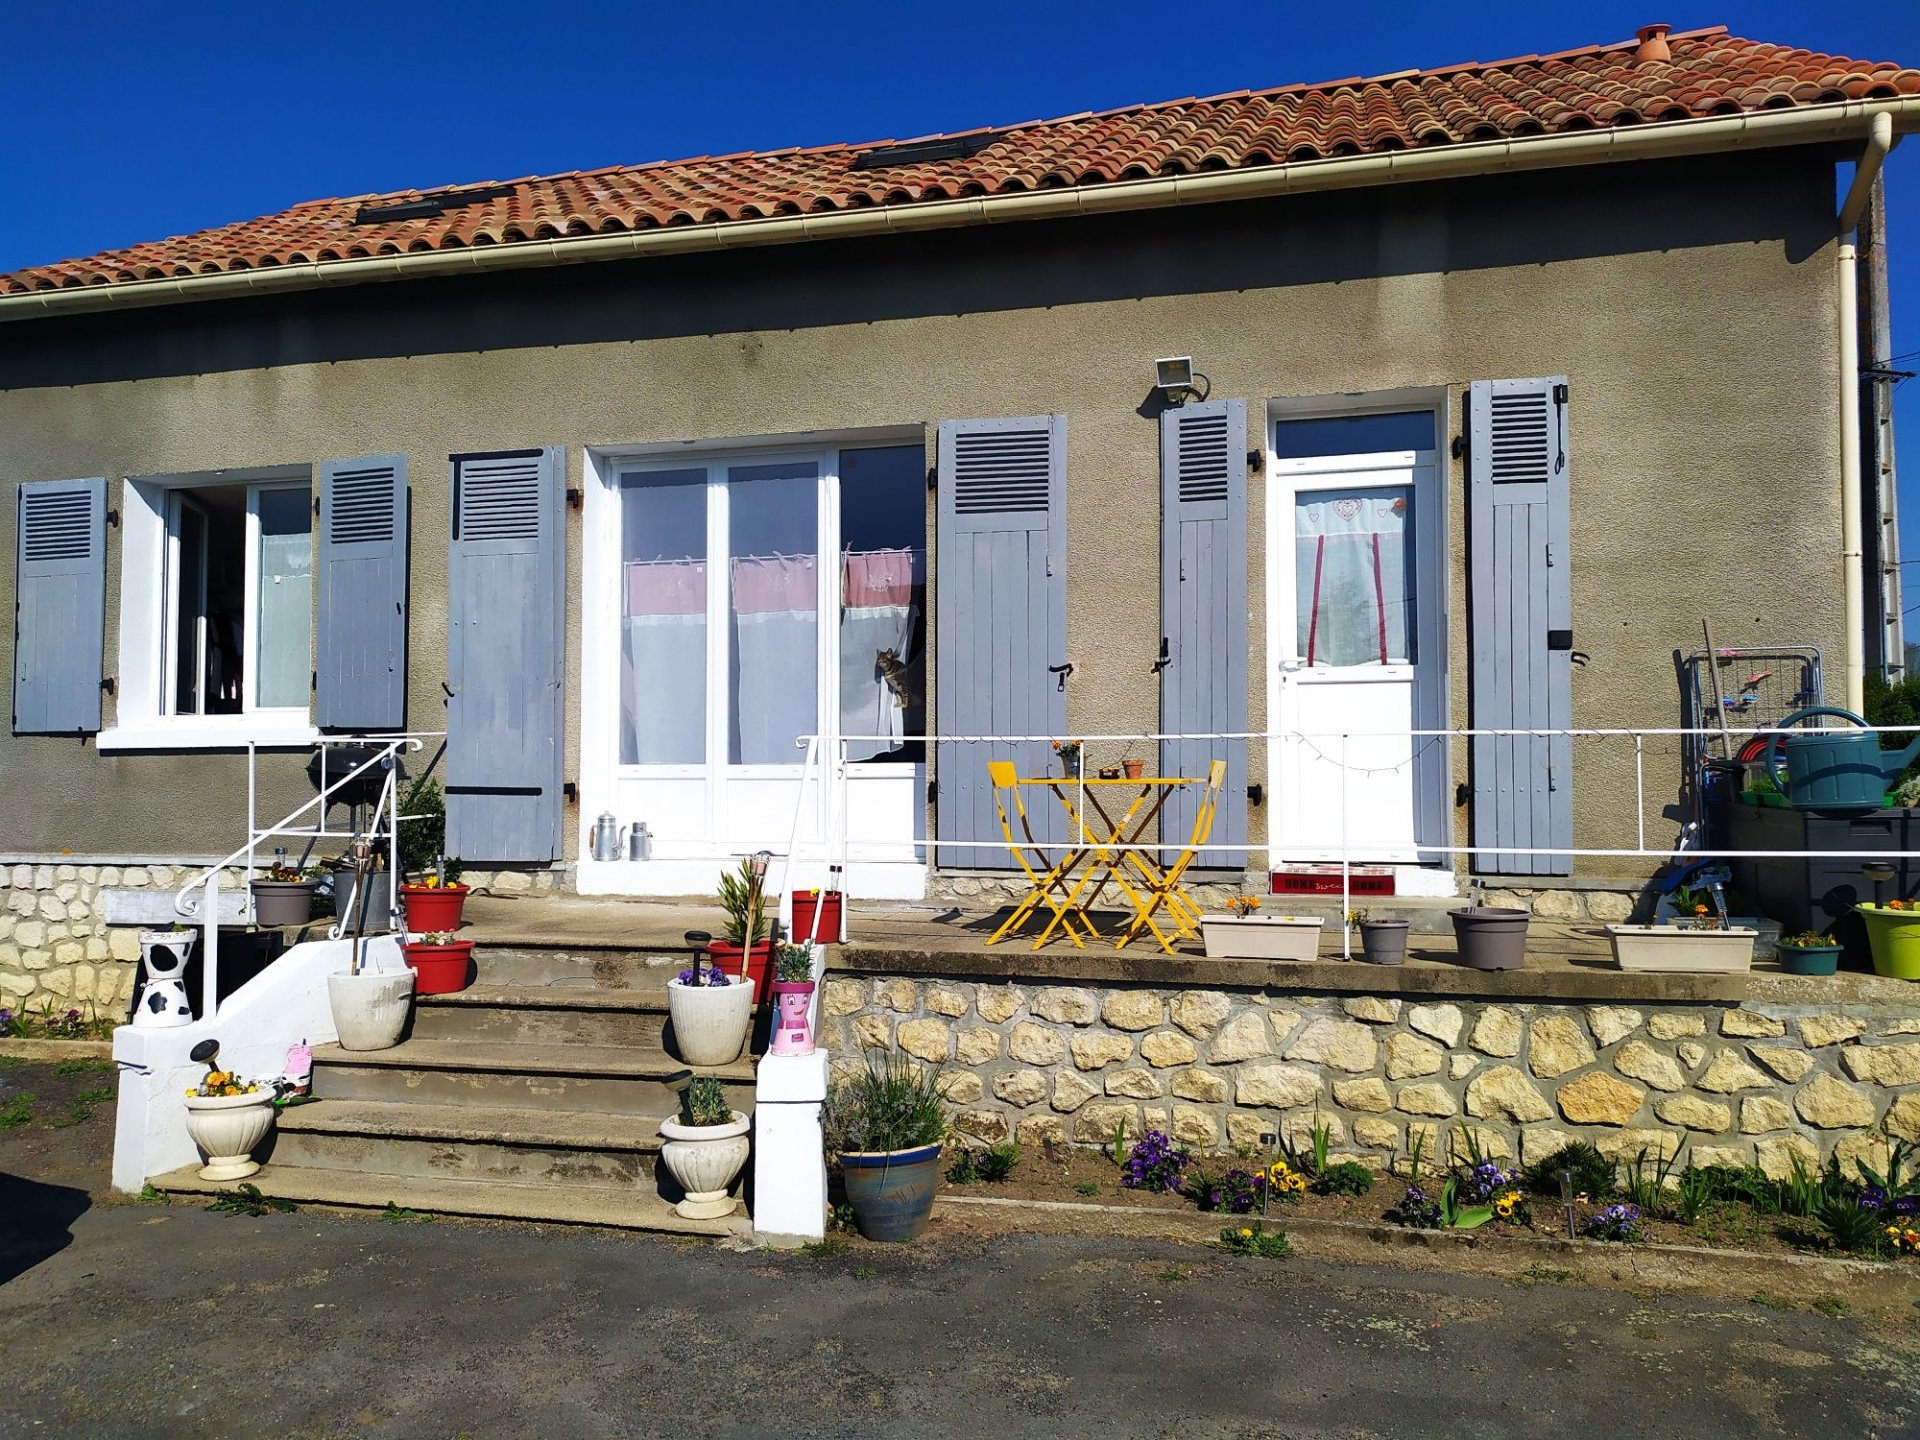 3-bedroom house with a garden of 1,000 M².